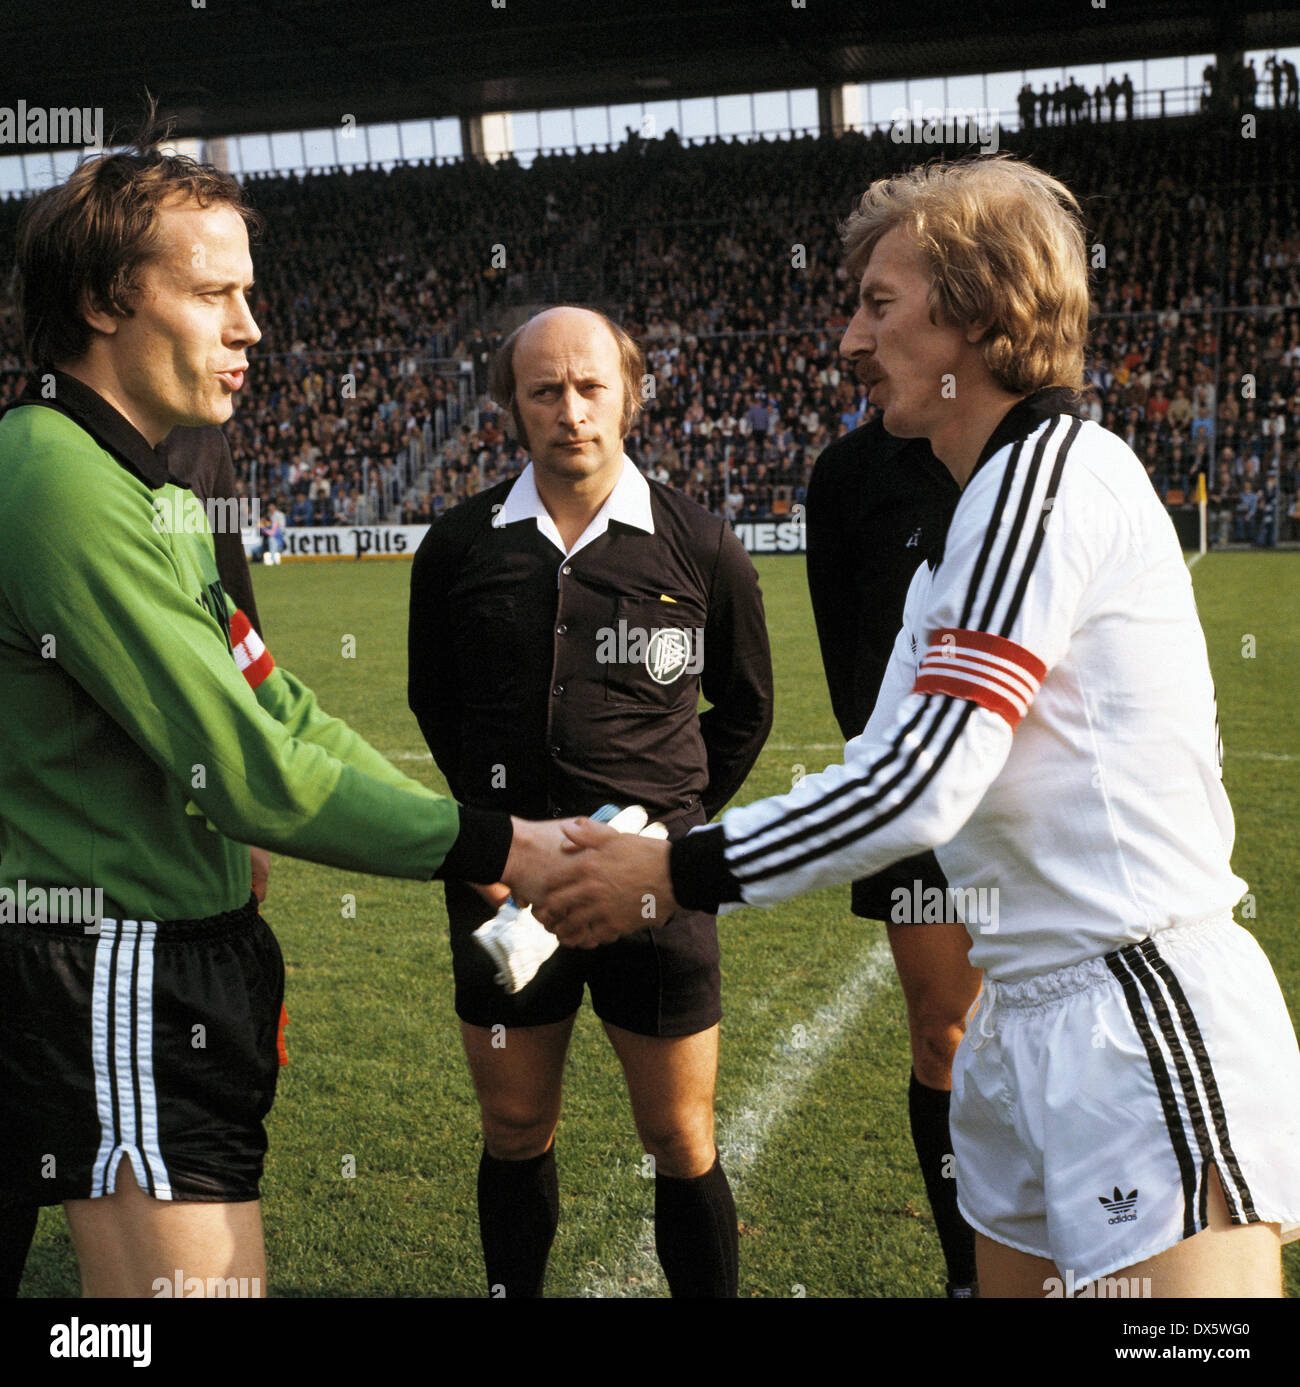 football, Bundesliga, 1977/1978, Stadium an der Castroper Strasse, VfL Bochum versus Eintracht Frankfurt 0:1, welcome, team leaders keeper Werner Scholz (VfL) left and Juergen Grabowski (Eintracht), behind referee Walter Niemann and assistants - Stock Image